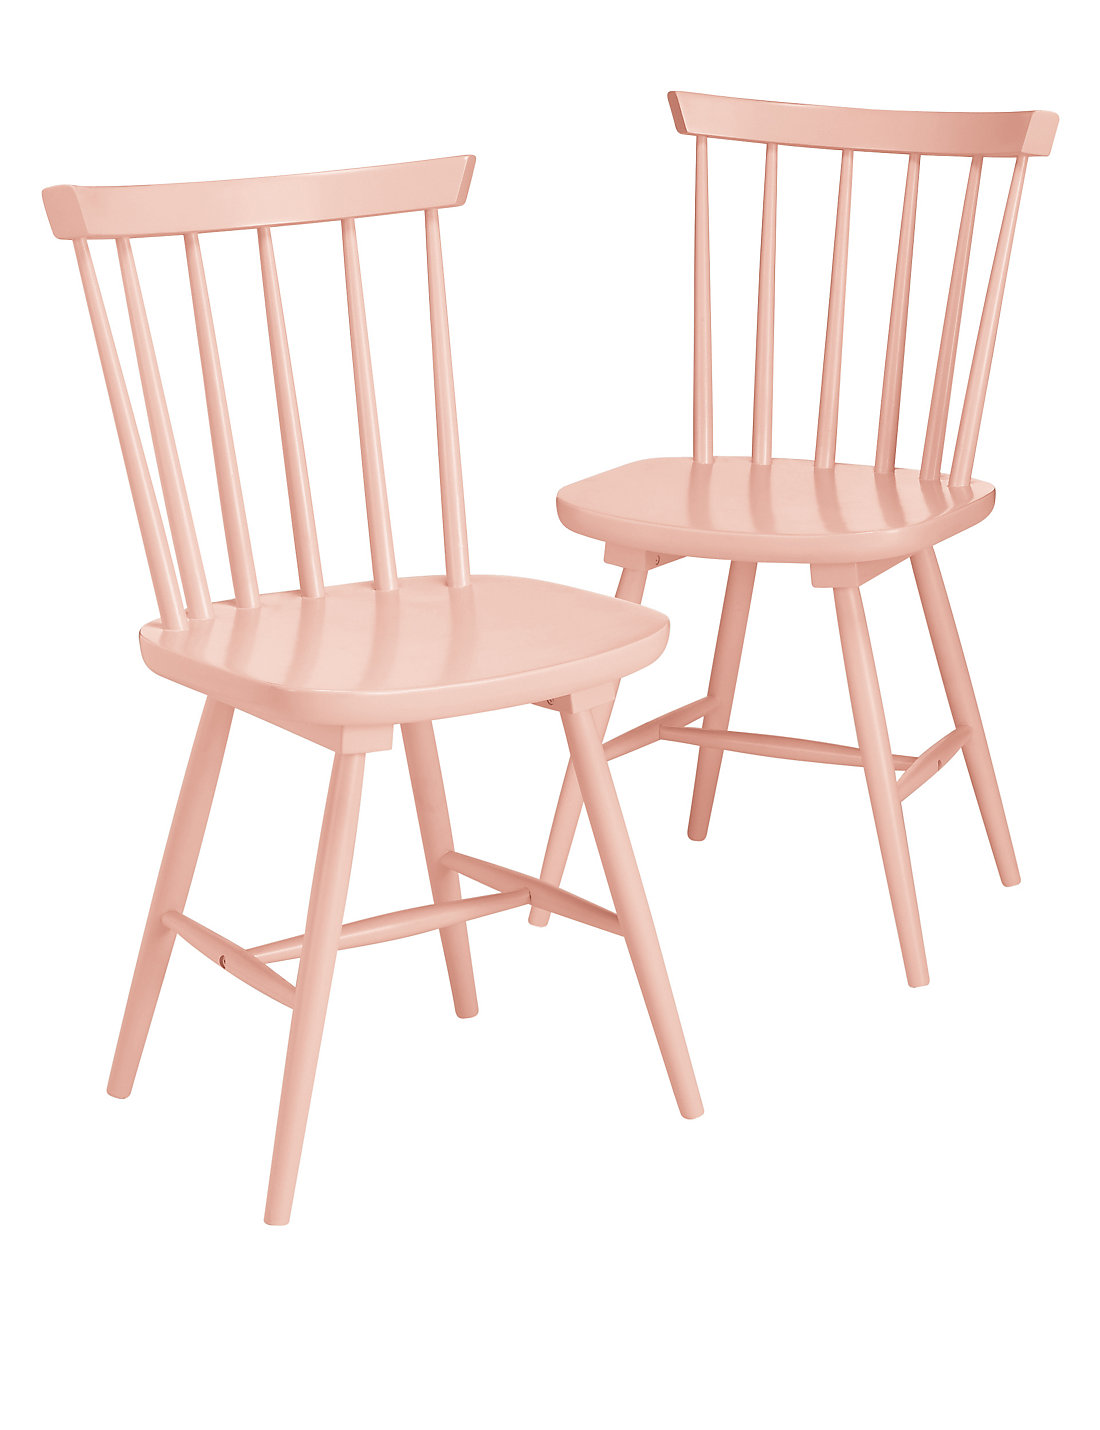 2 Dinton Coral Chairs Part 42